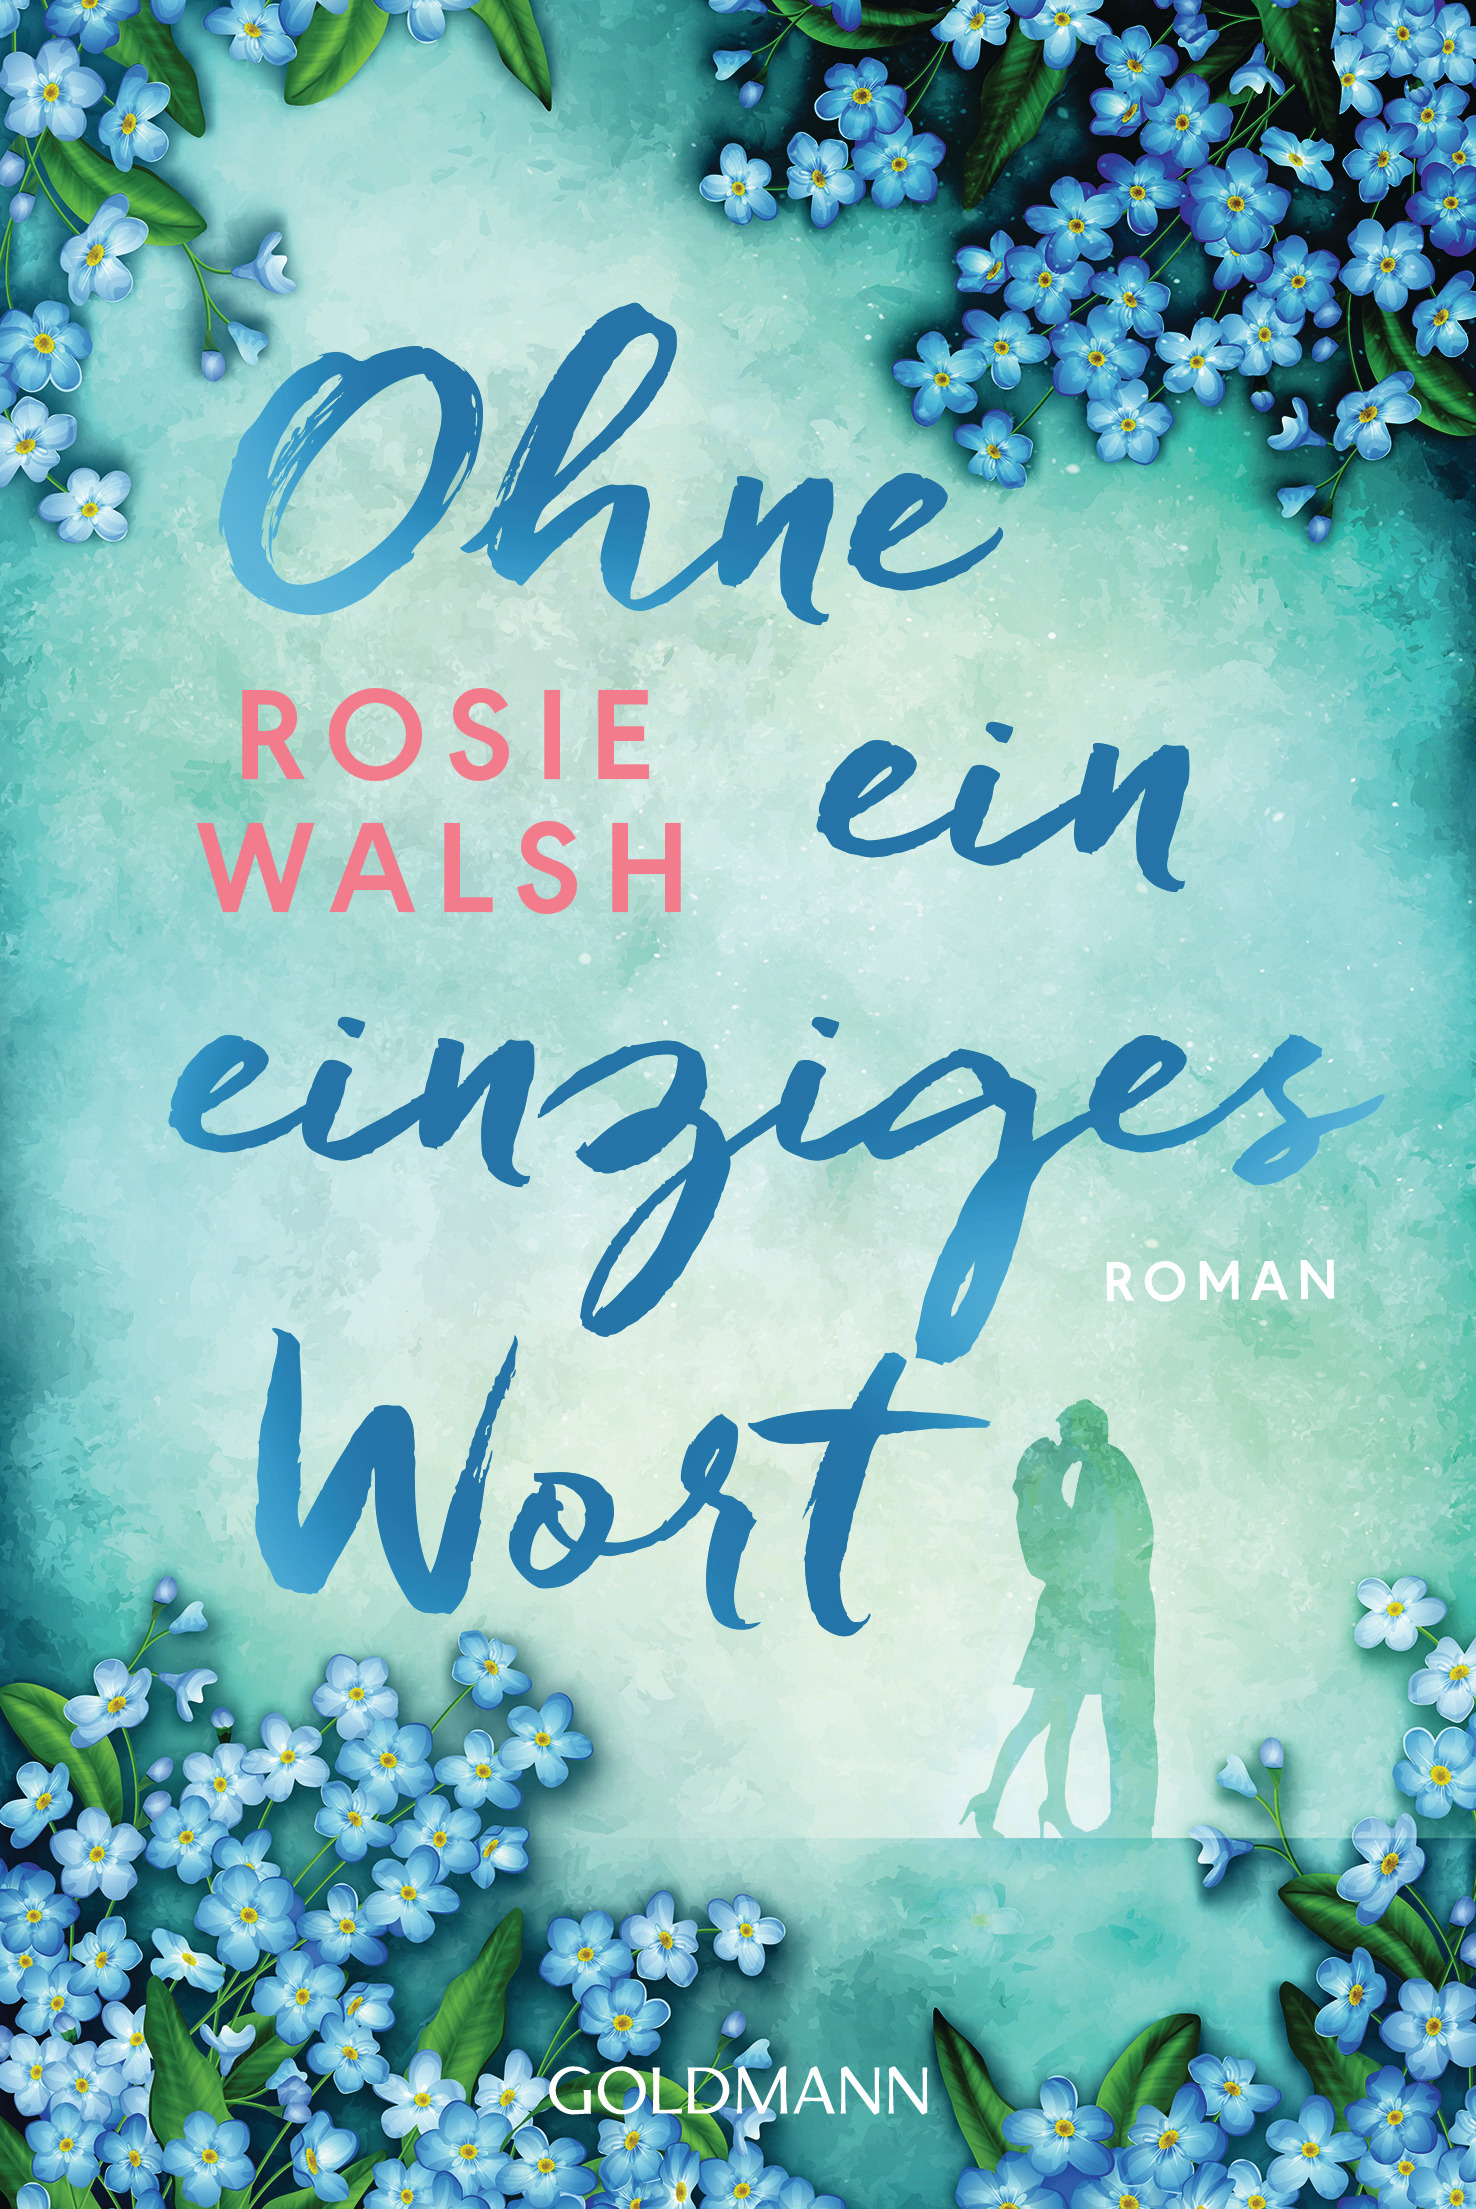 https://www.randomhouse.de/content/edition/covervoila_hires/Walsh_ROhne_ein_einziges_Wort_184368.jpg